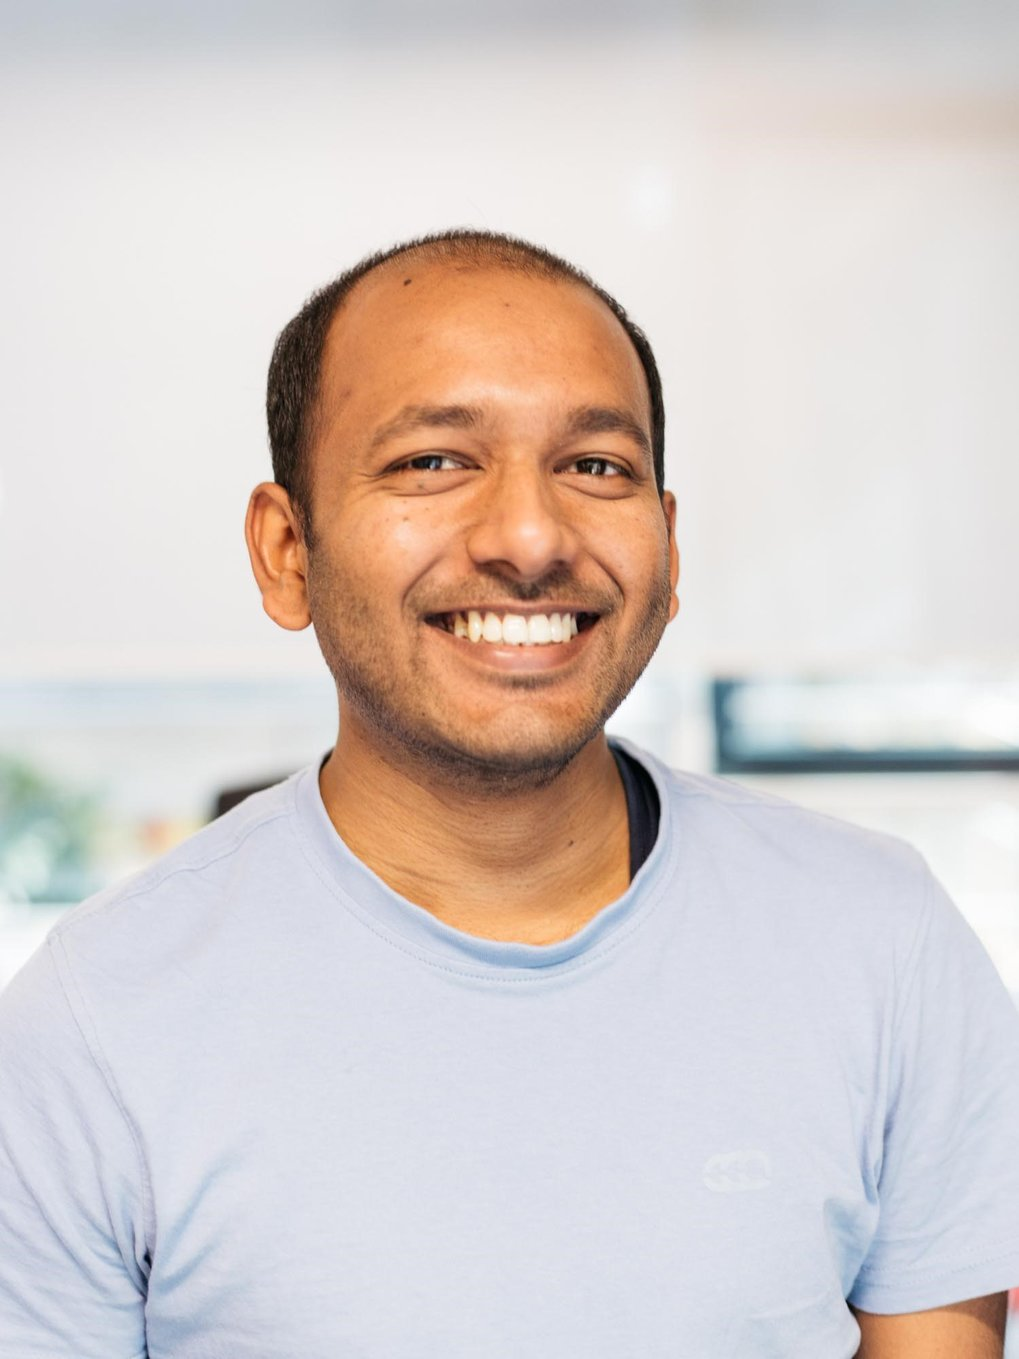 The Alexander von Humboldt foundation, Germany, awarded Satya a Humboldt Research Fellowship for postdoctoral researchers. He is currently working as a postdoc with Prof. Claudia Felser.